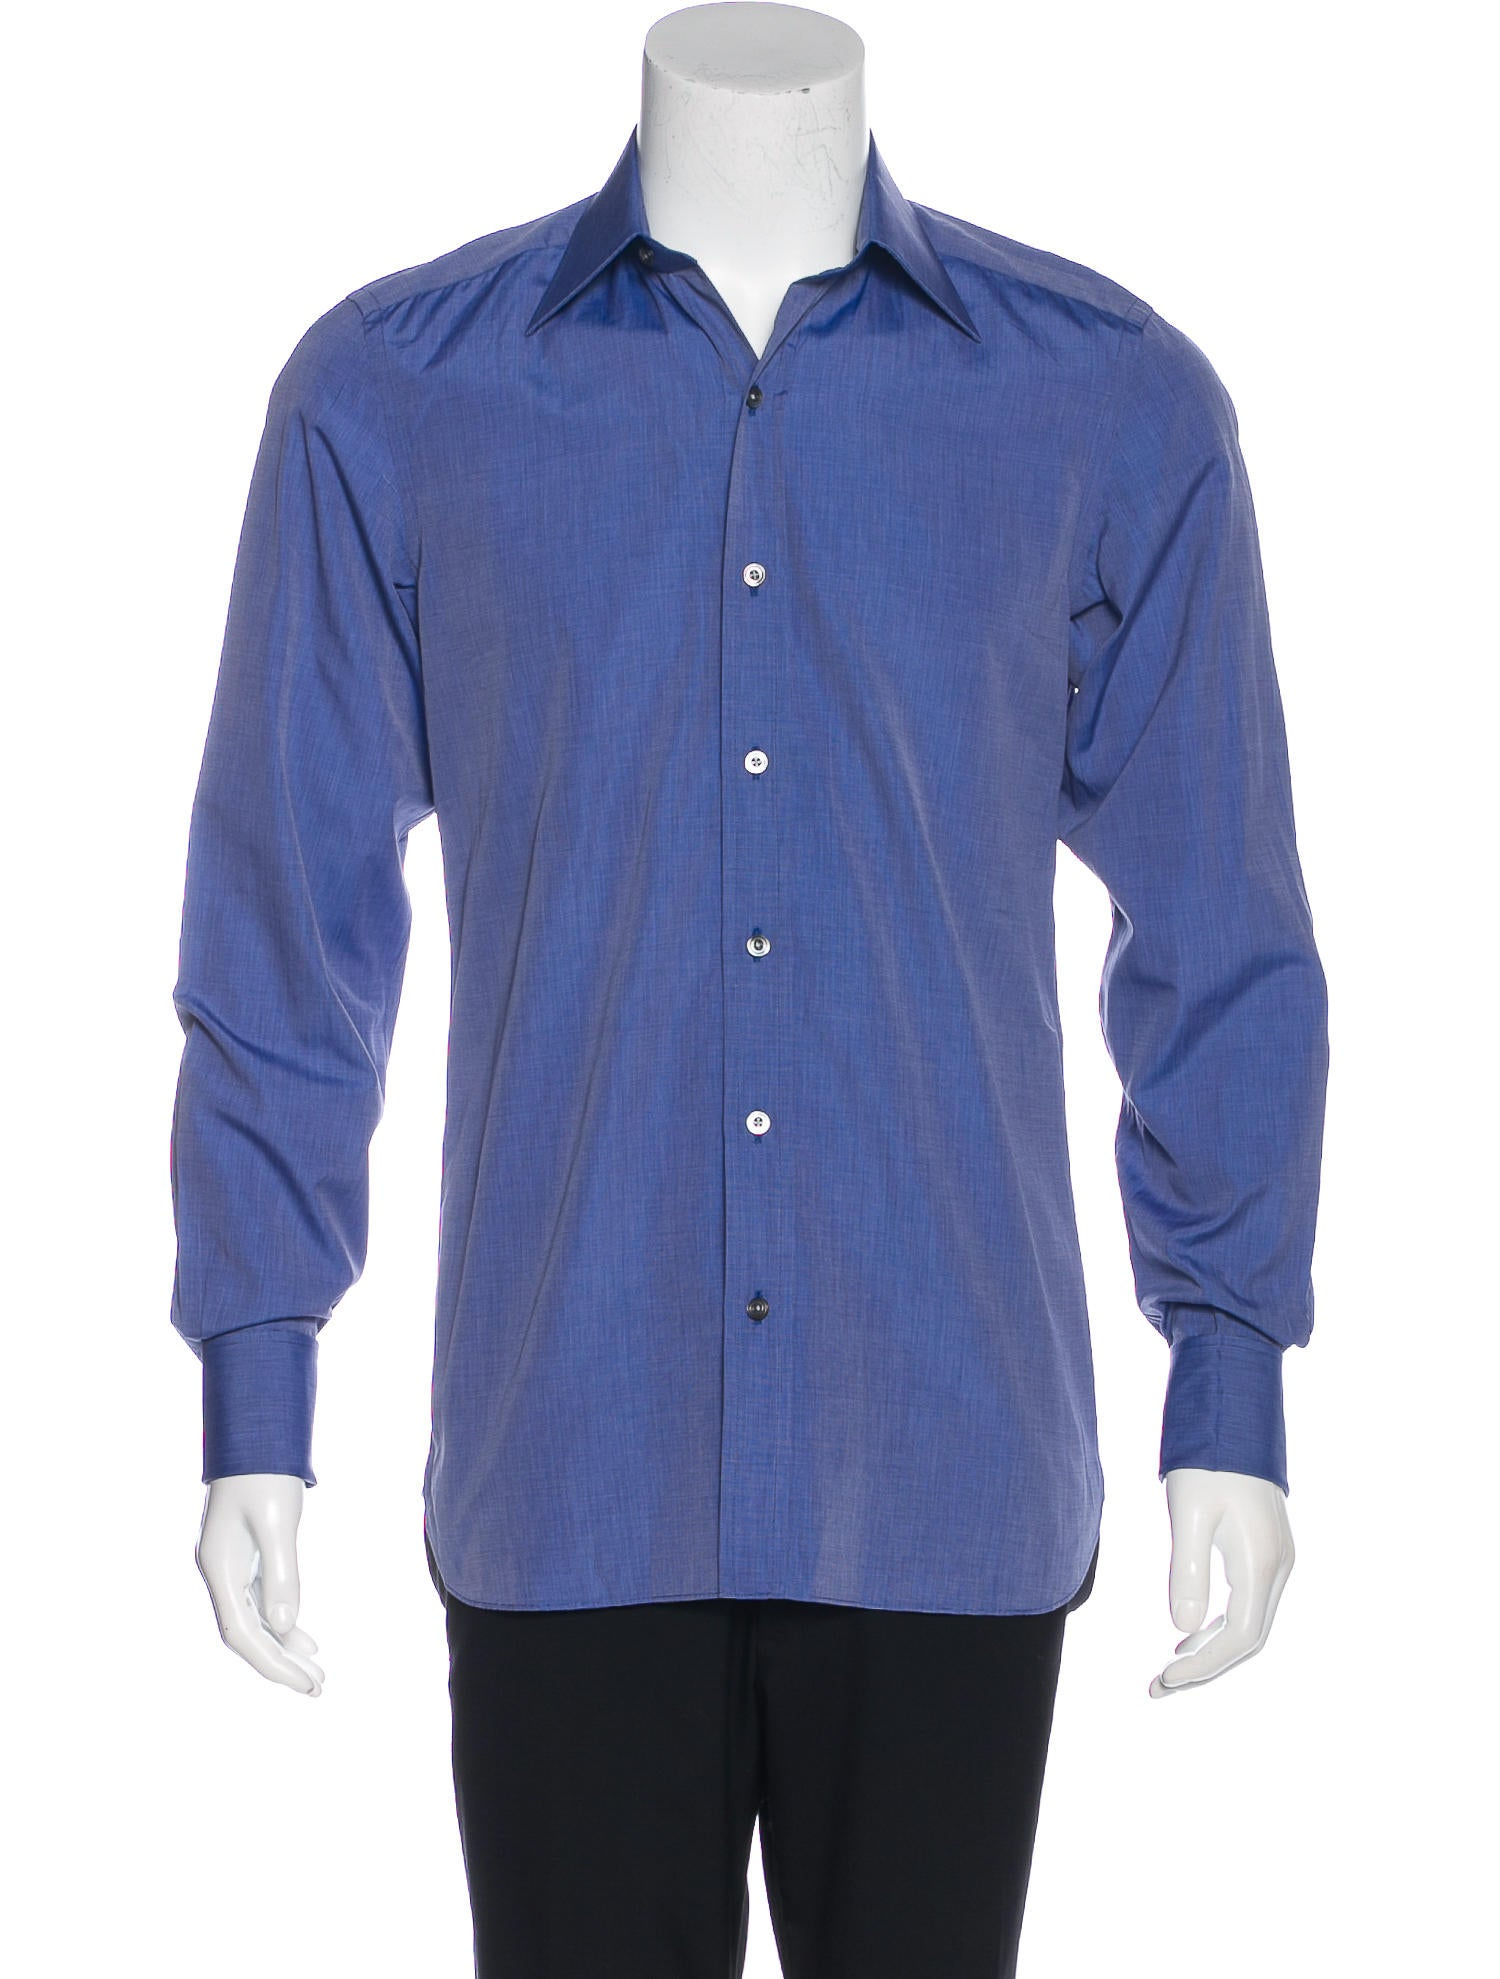 Tom ford french cuff dress shirt clothing tom36649 for Mens dress shirts french cuffs